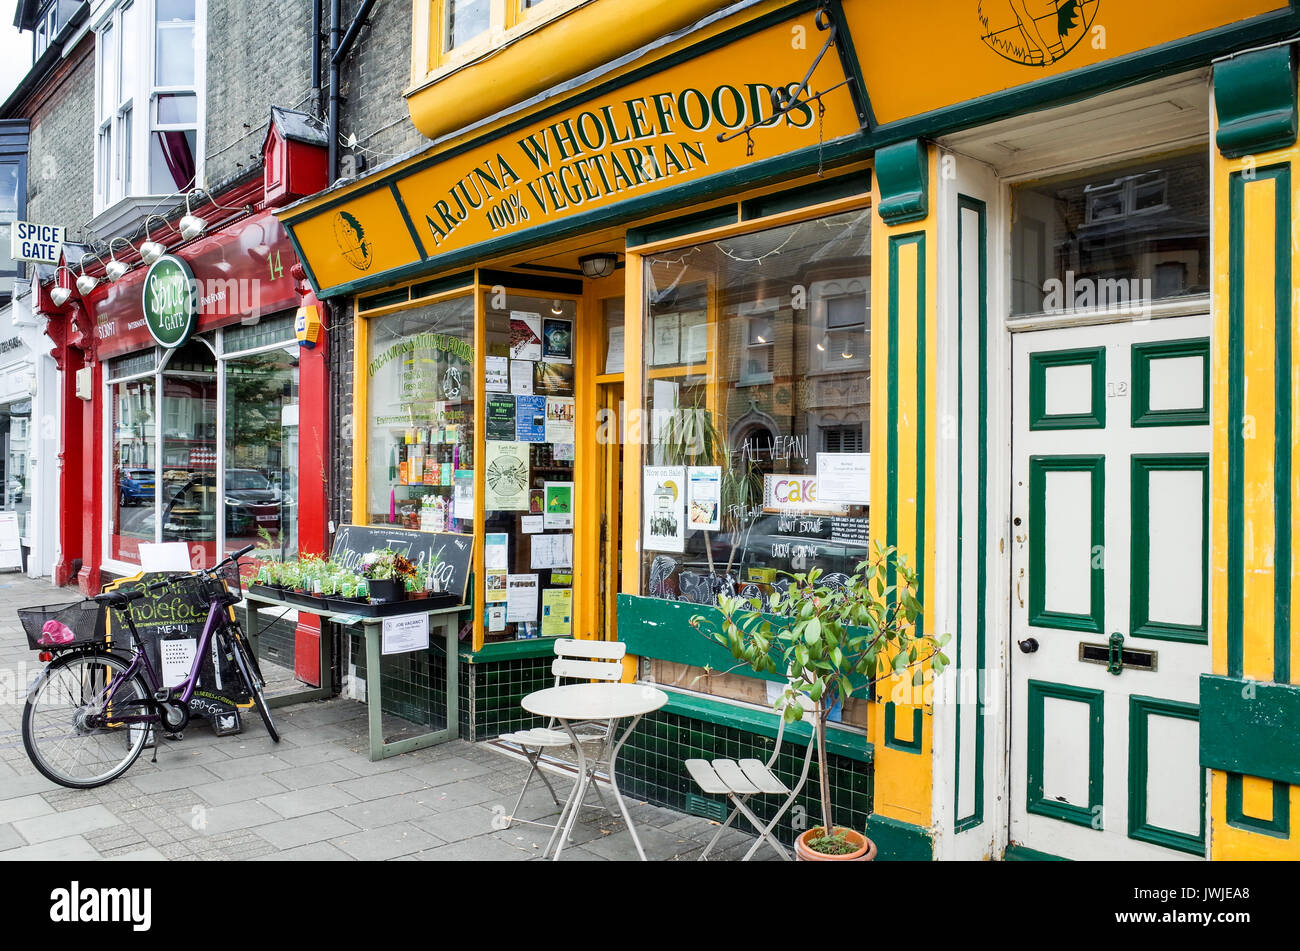 The Arjuna Wholefood Shop in Mill Road, Cambridge, an area of Independent Stores and Restaurants. - Stock Image